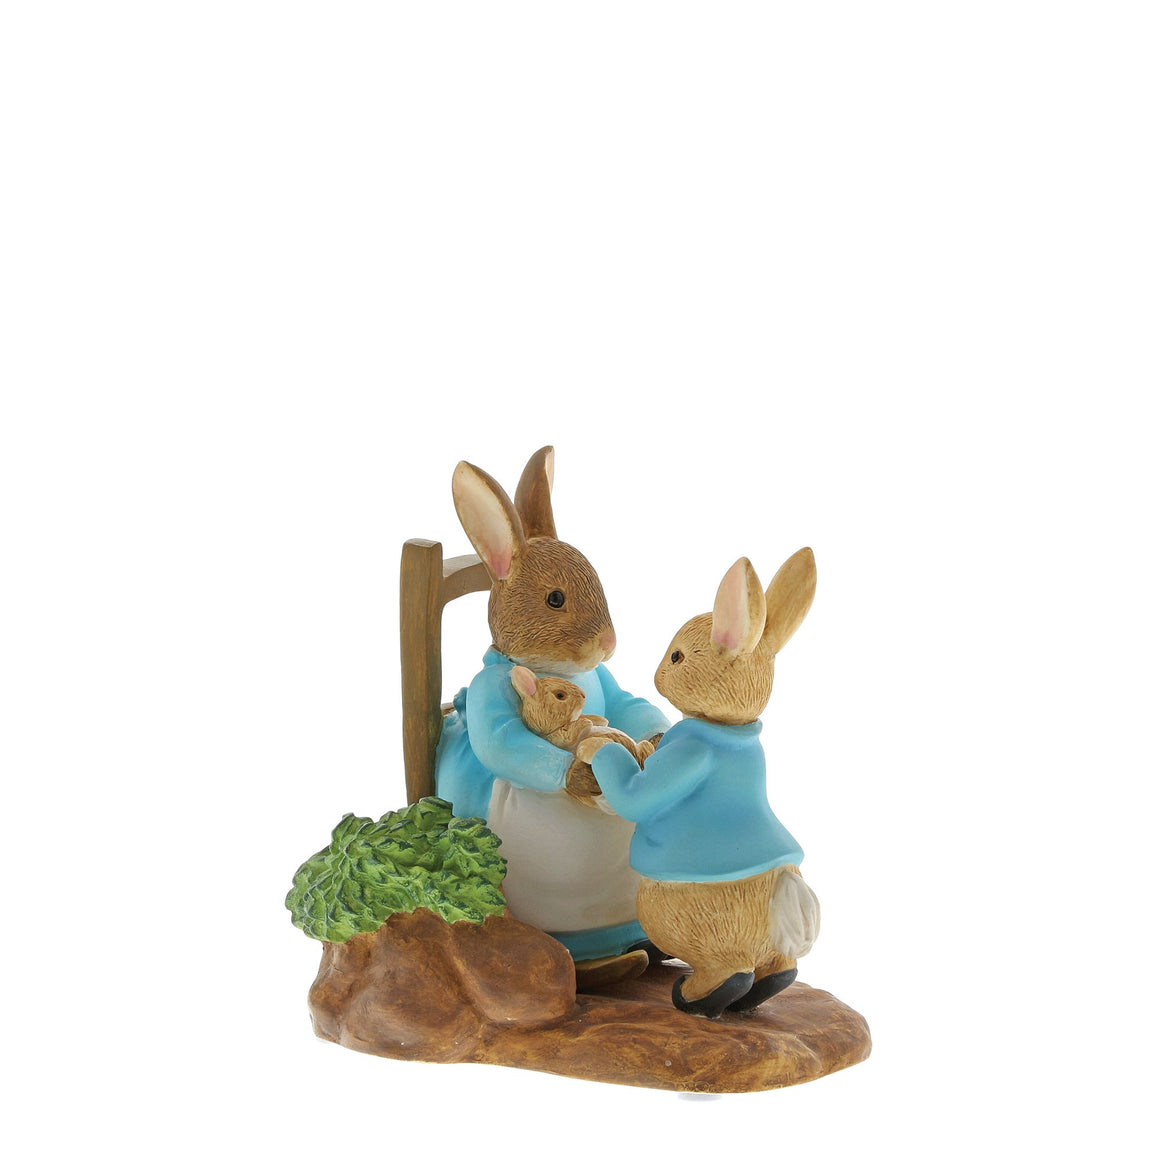 At Home by the Fire with Mummy Rabbit Figurine by Beatrix Potter